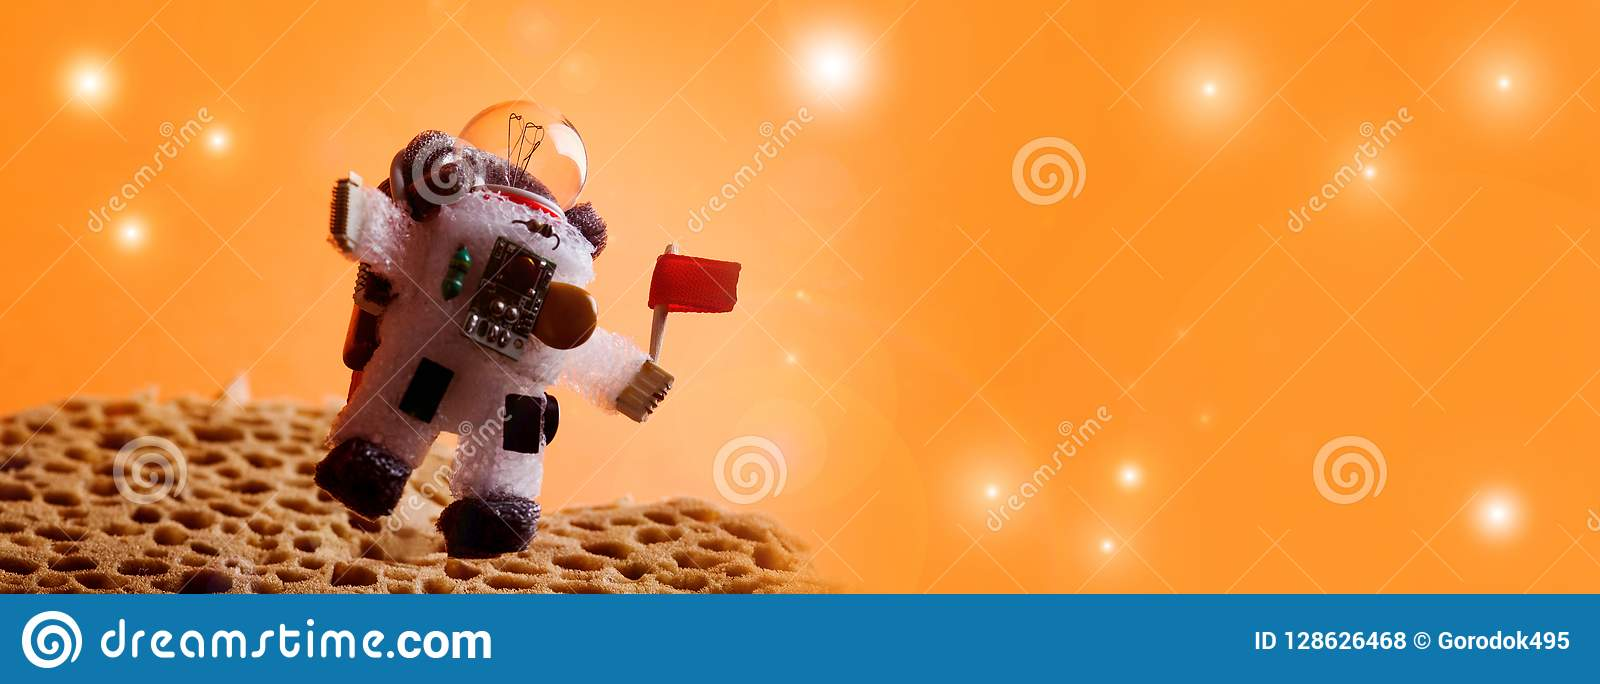 Spaceman floating stratosphere, orange planet sky stars background. Light bulb character dressed in spacesuit astronaut